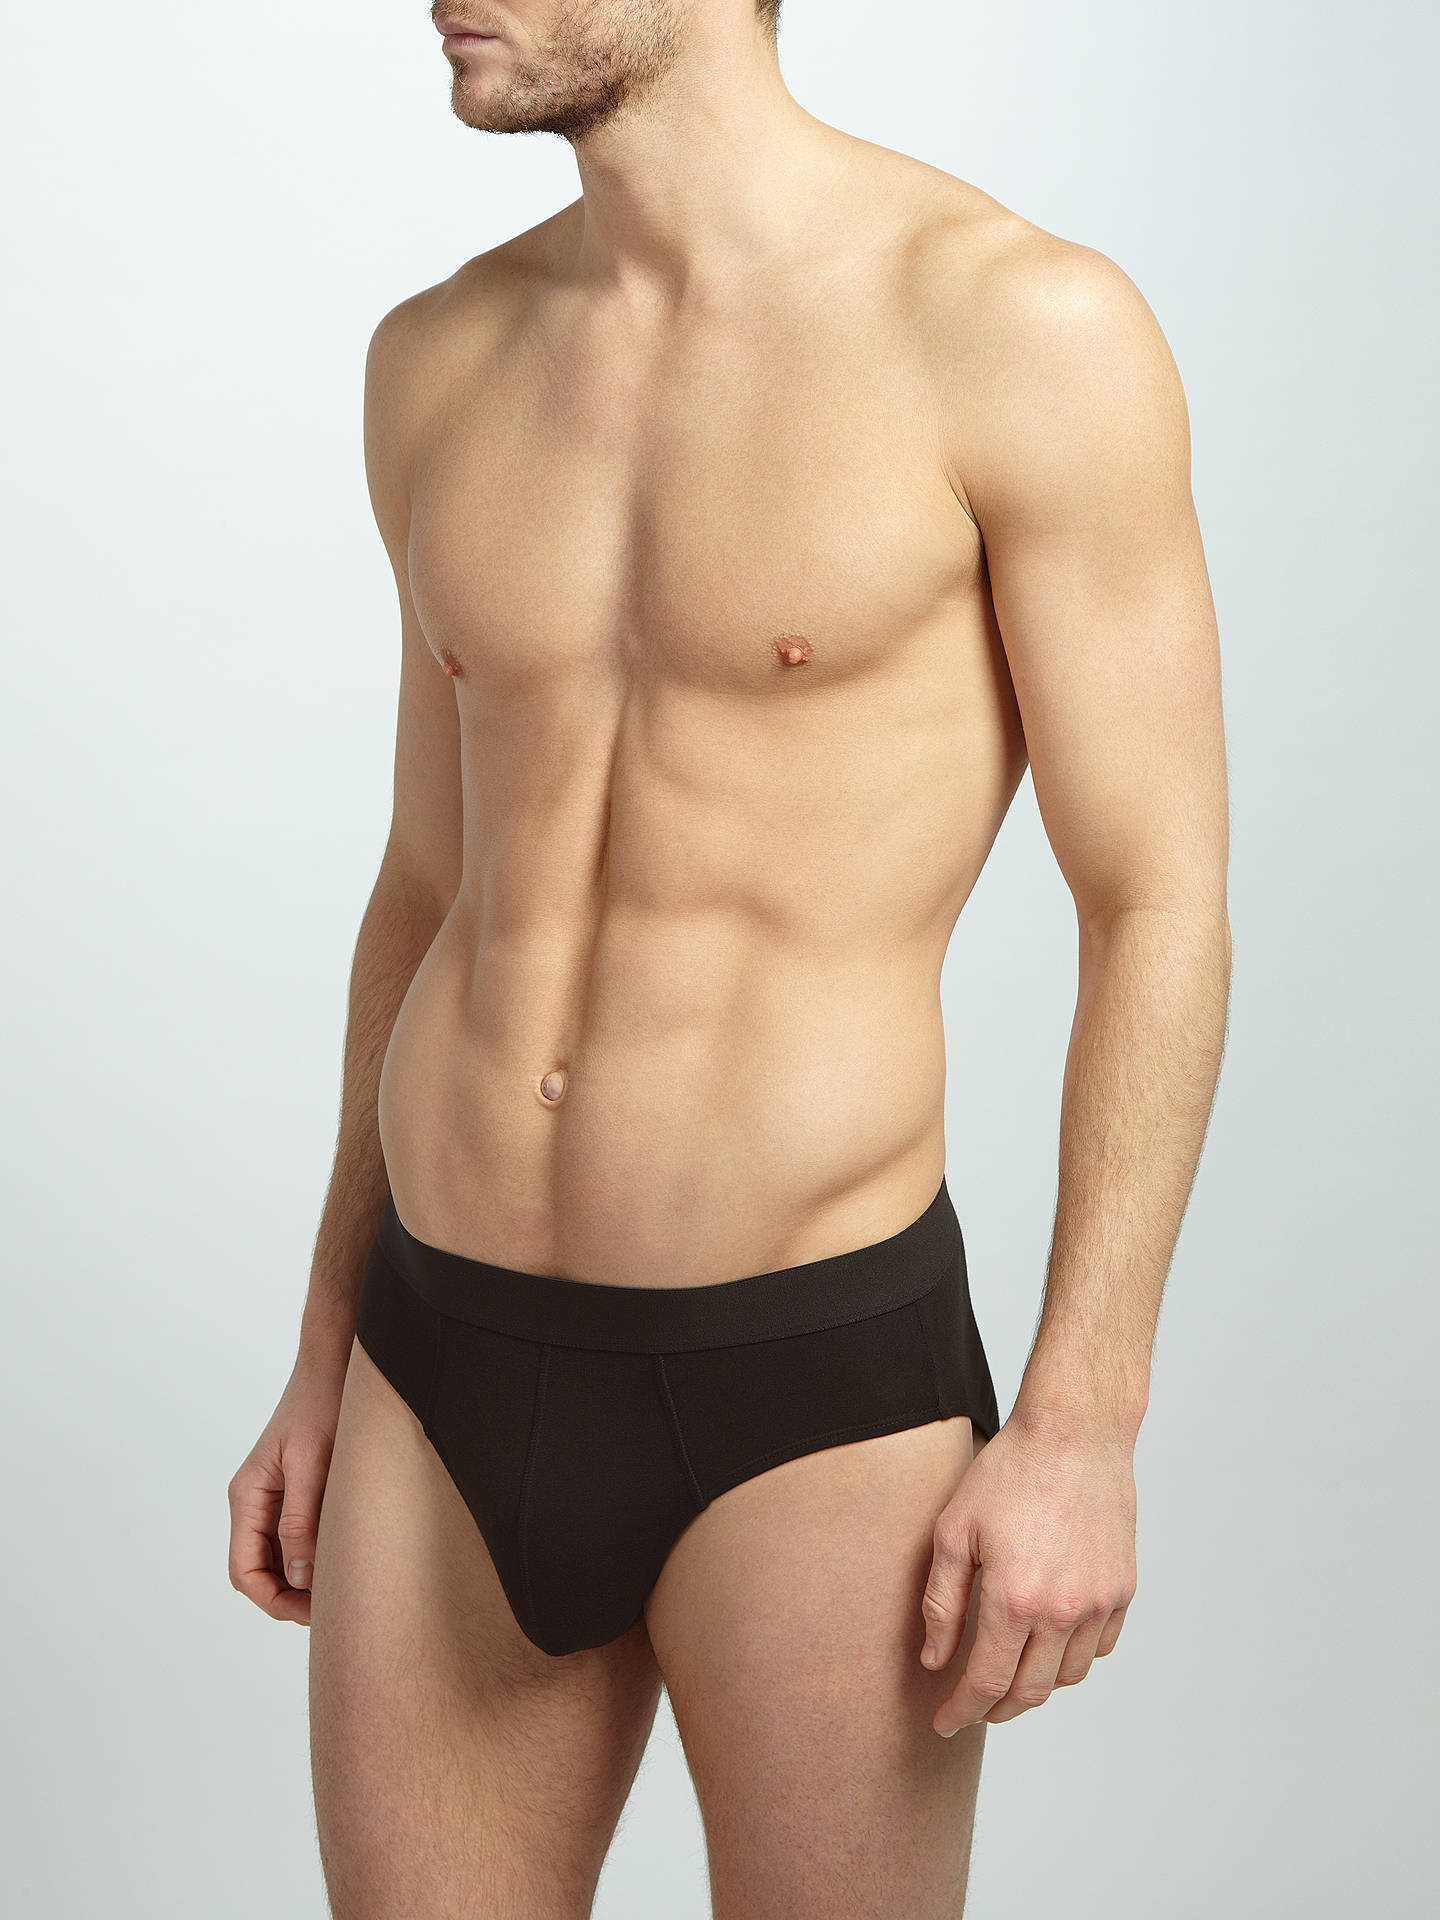 BuyJohn Lewis & Partners Organic Cotton Briefs, Pack of 4, Black, S Online at johnlewis.com